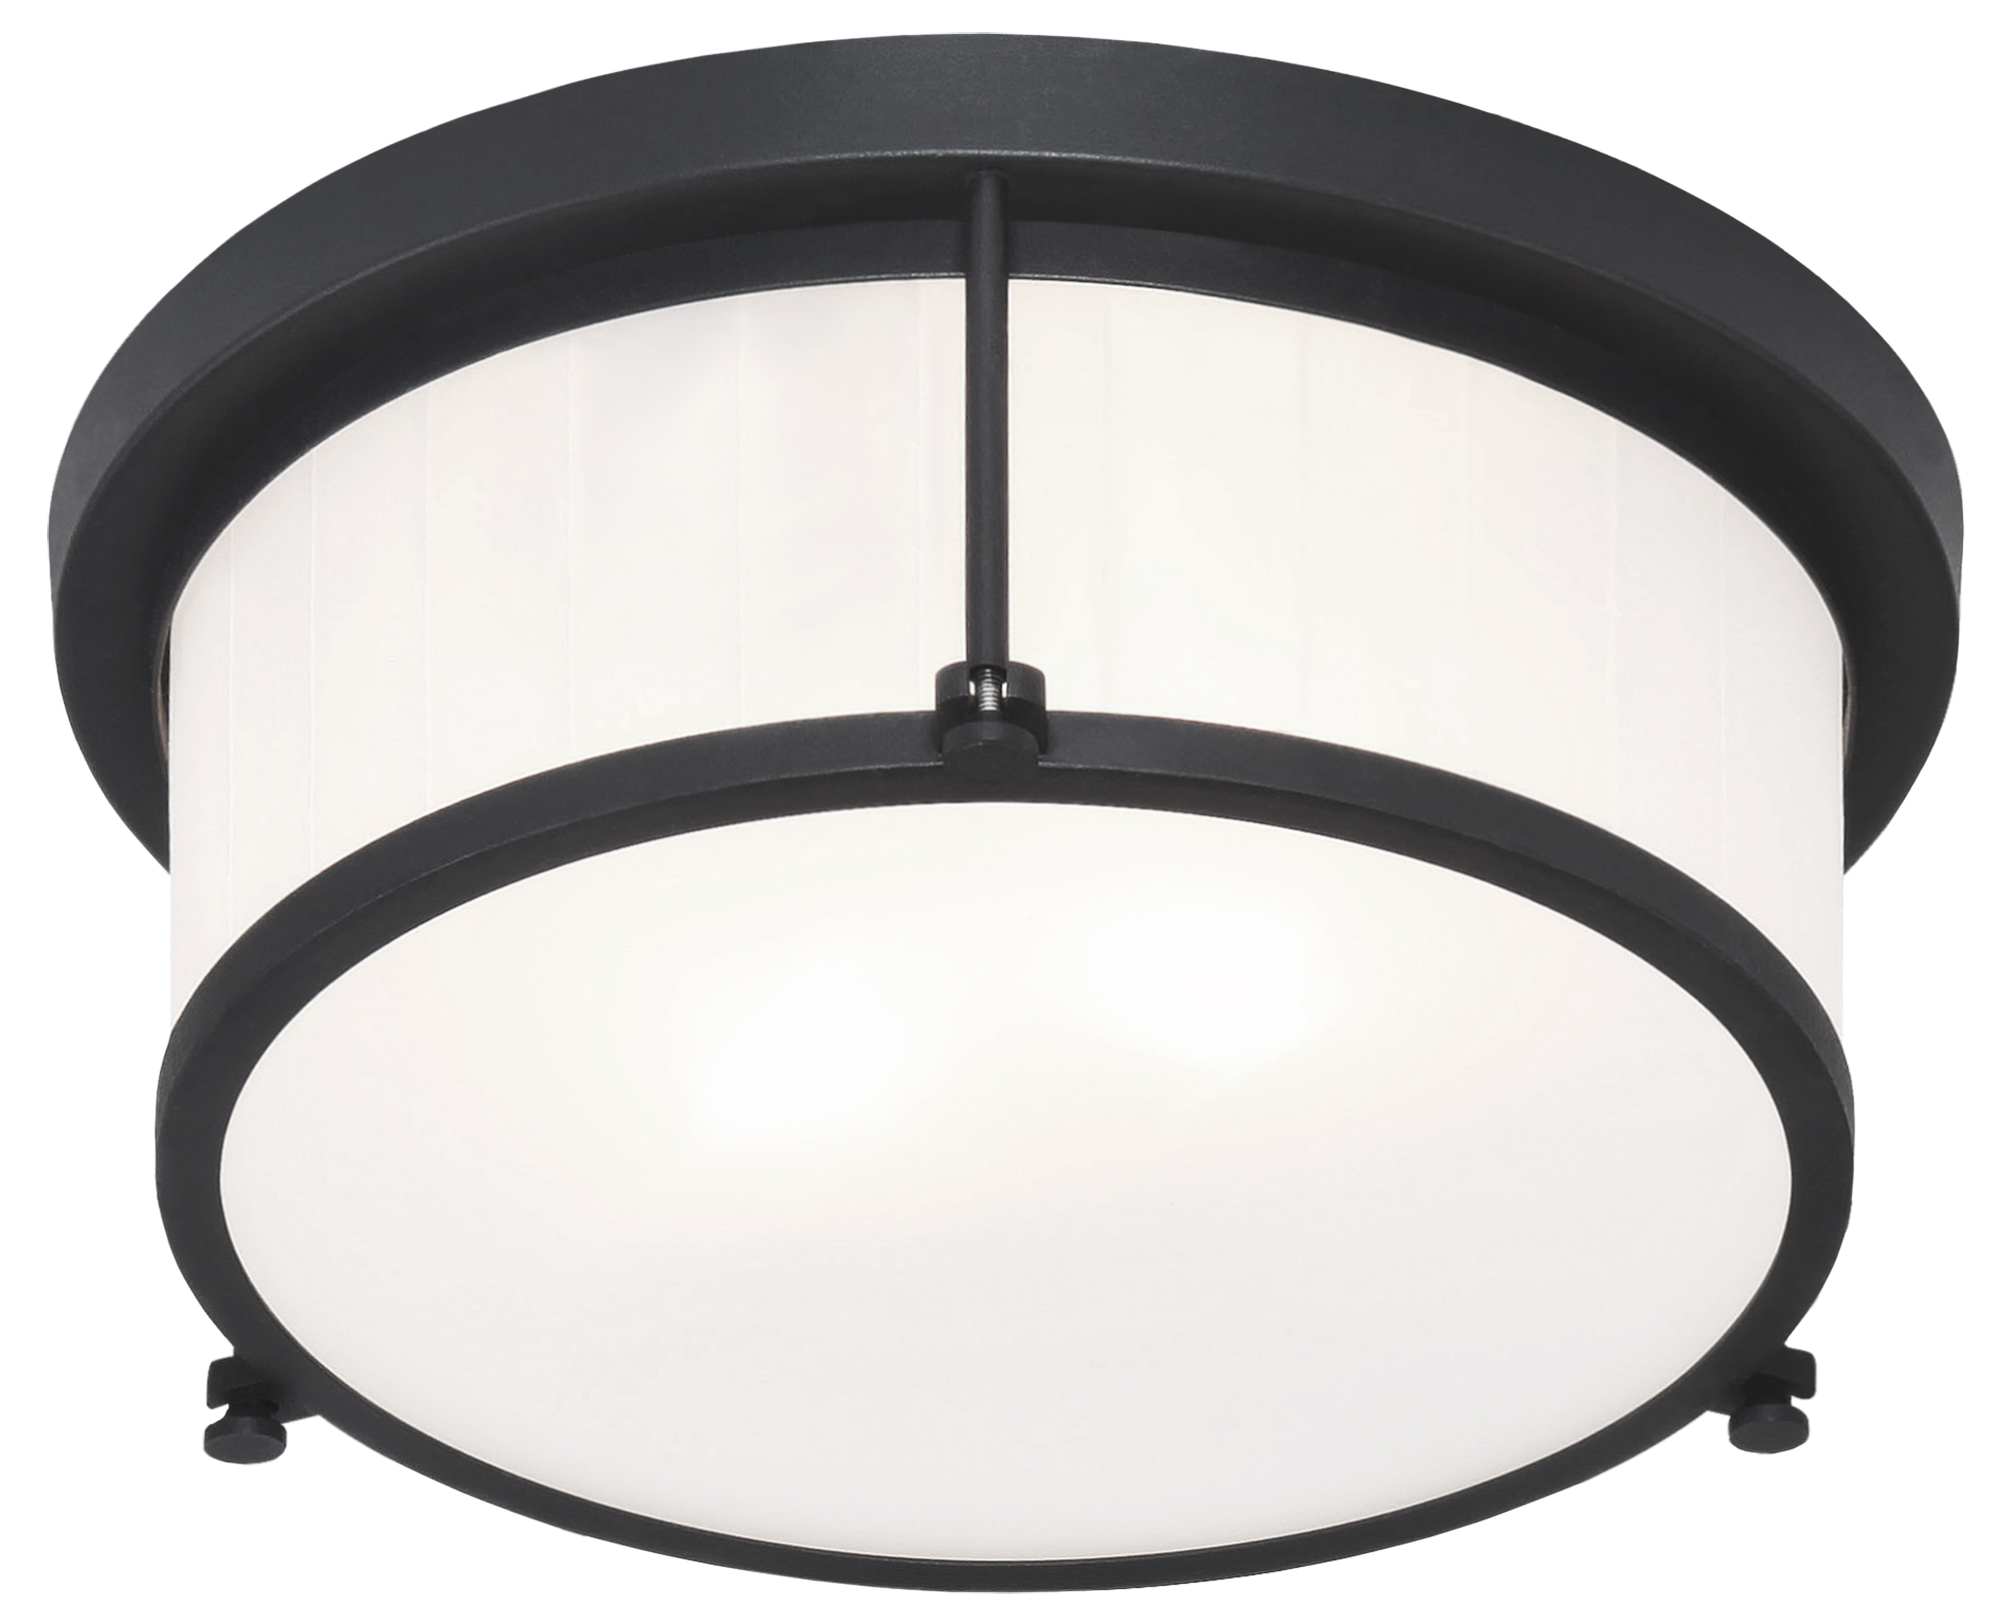 Caisse Claire Ceiling Light Fixture By Matteo Lighting M14902mb